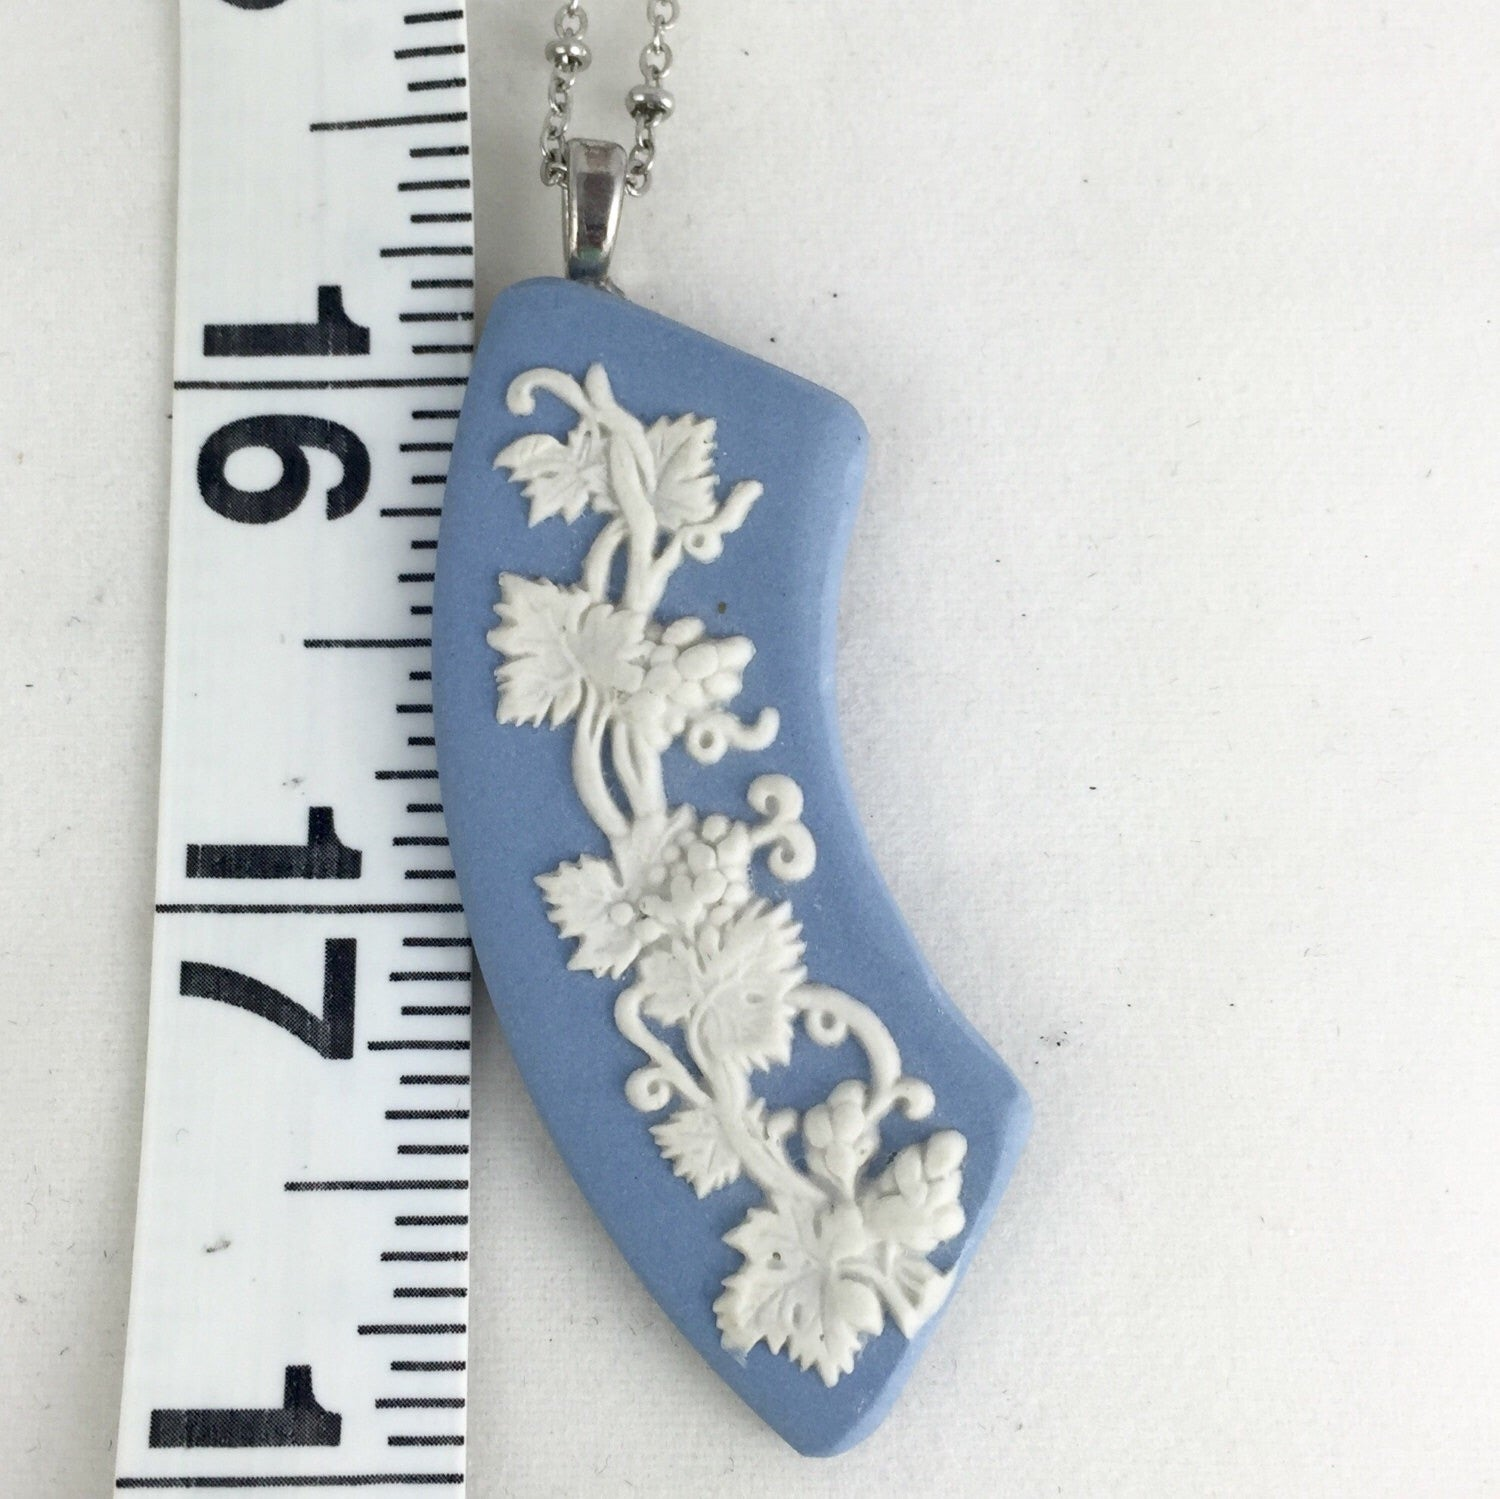 Vintage Blue Wedgwood plate necklace - Broken china jewelry